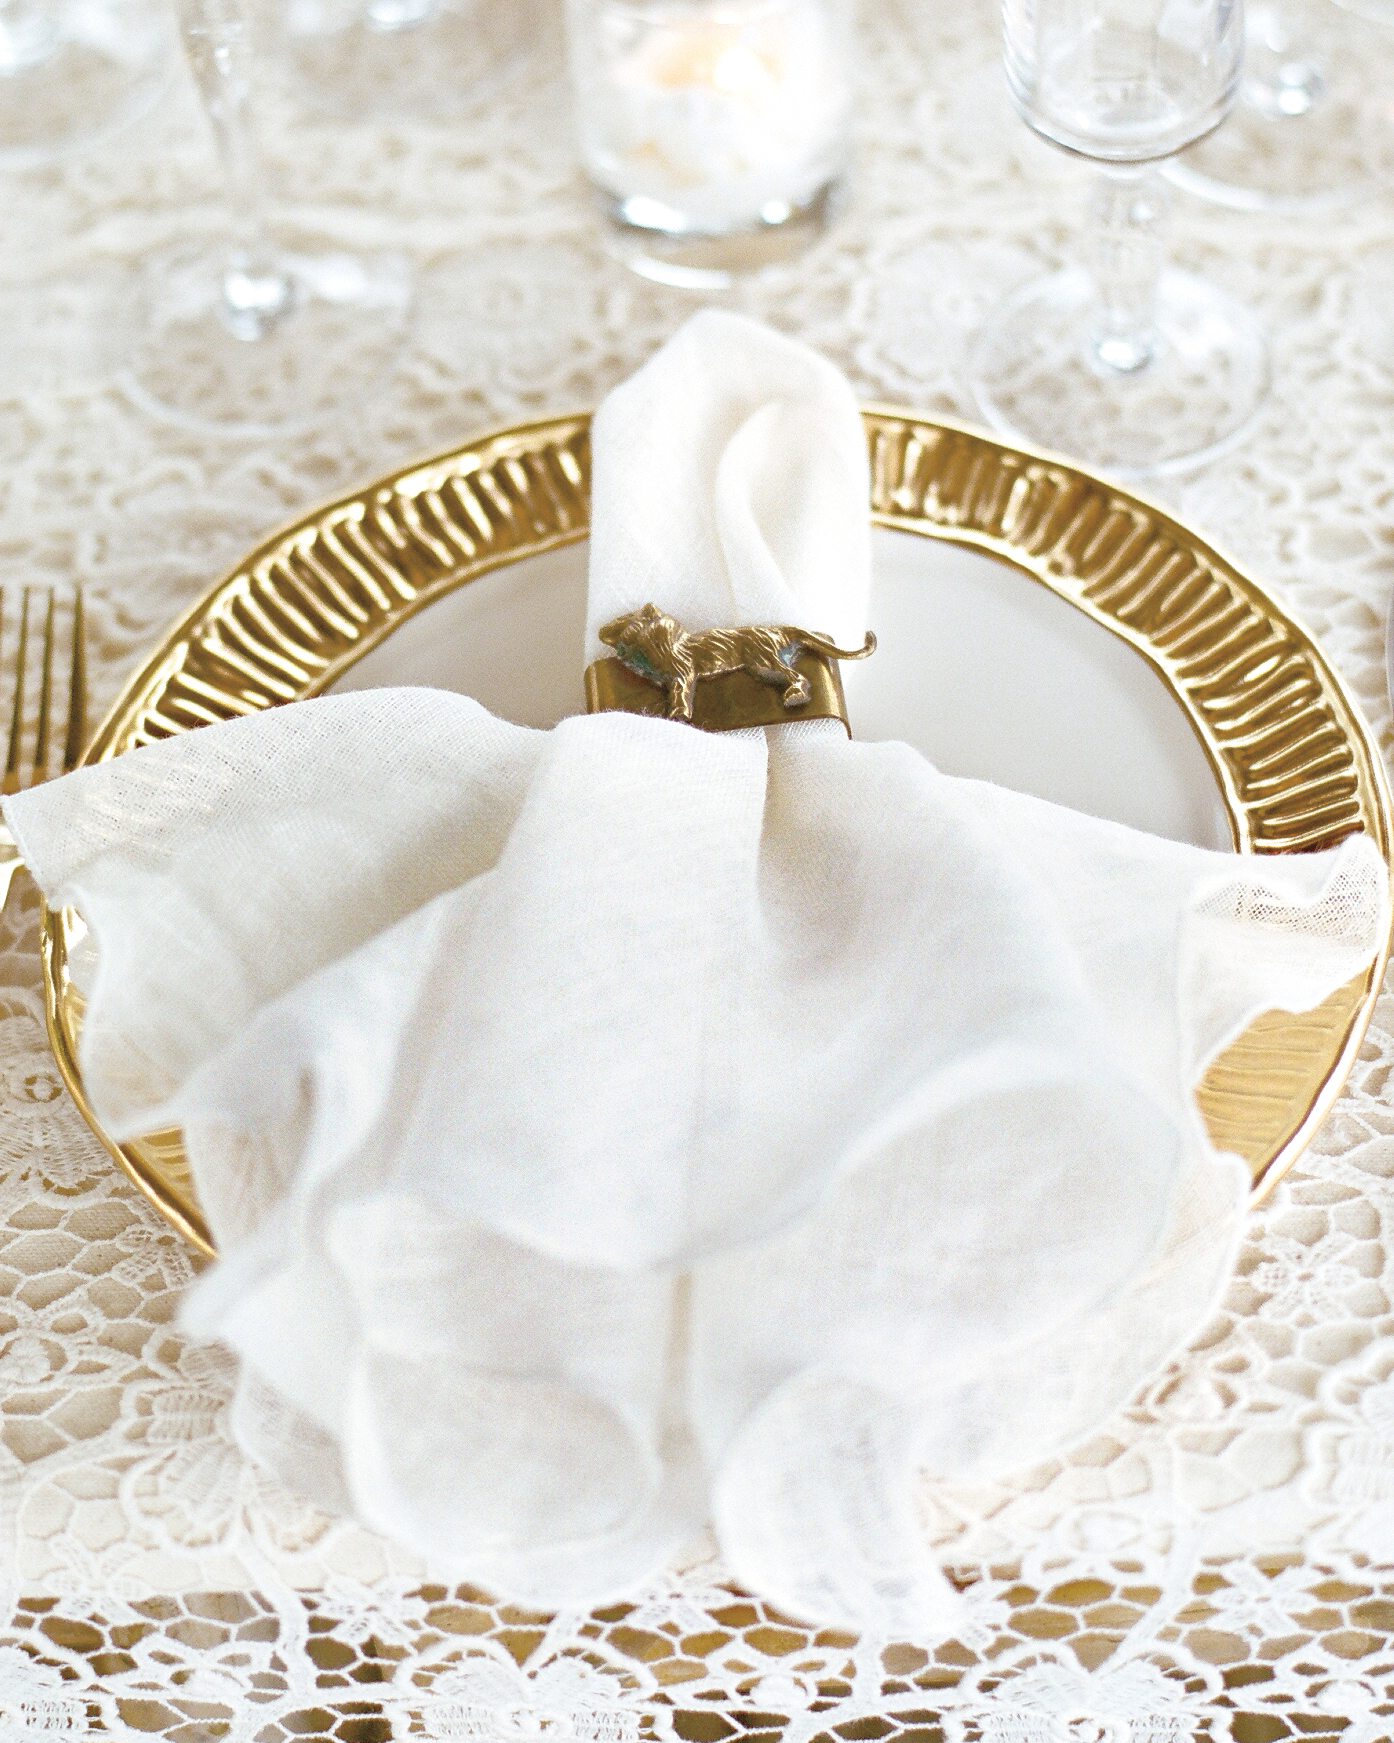 quinn-andy-place-setting-0002-mwds108811.jpg